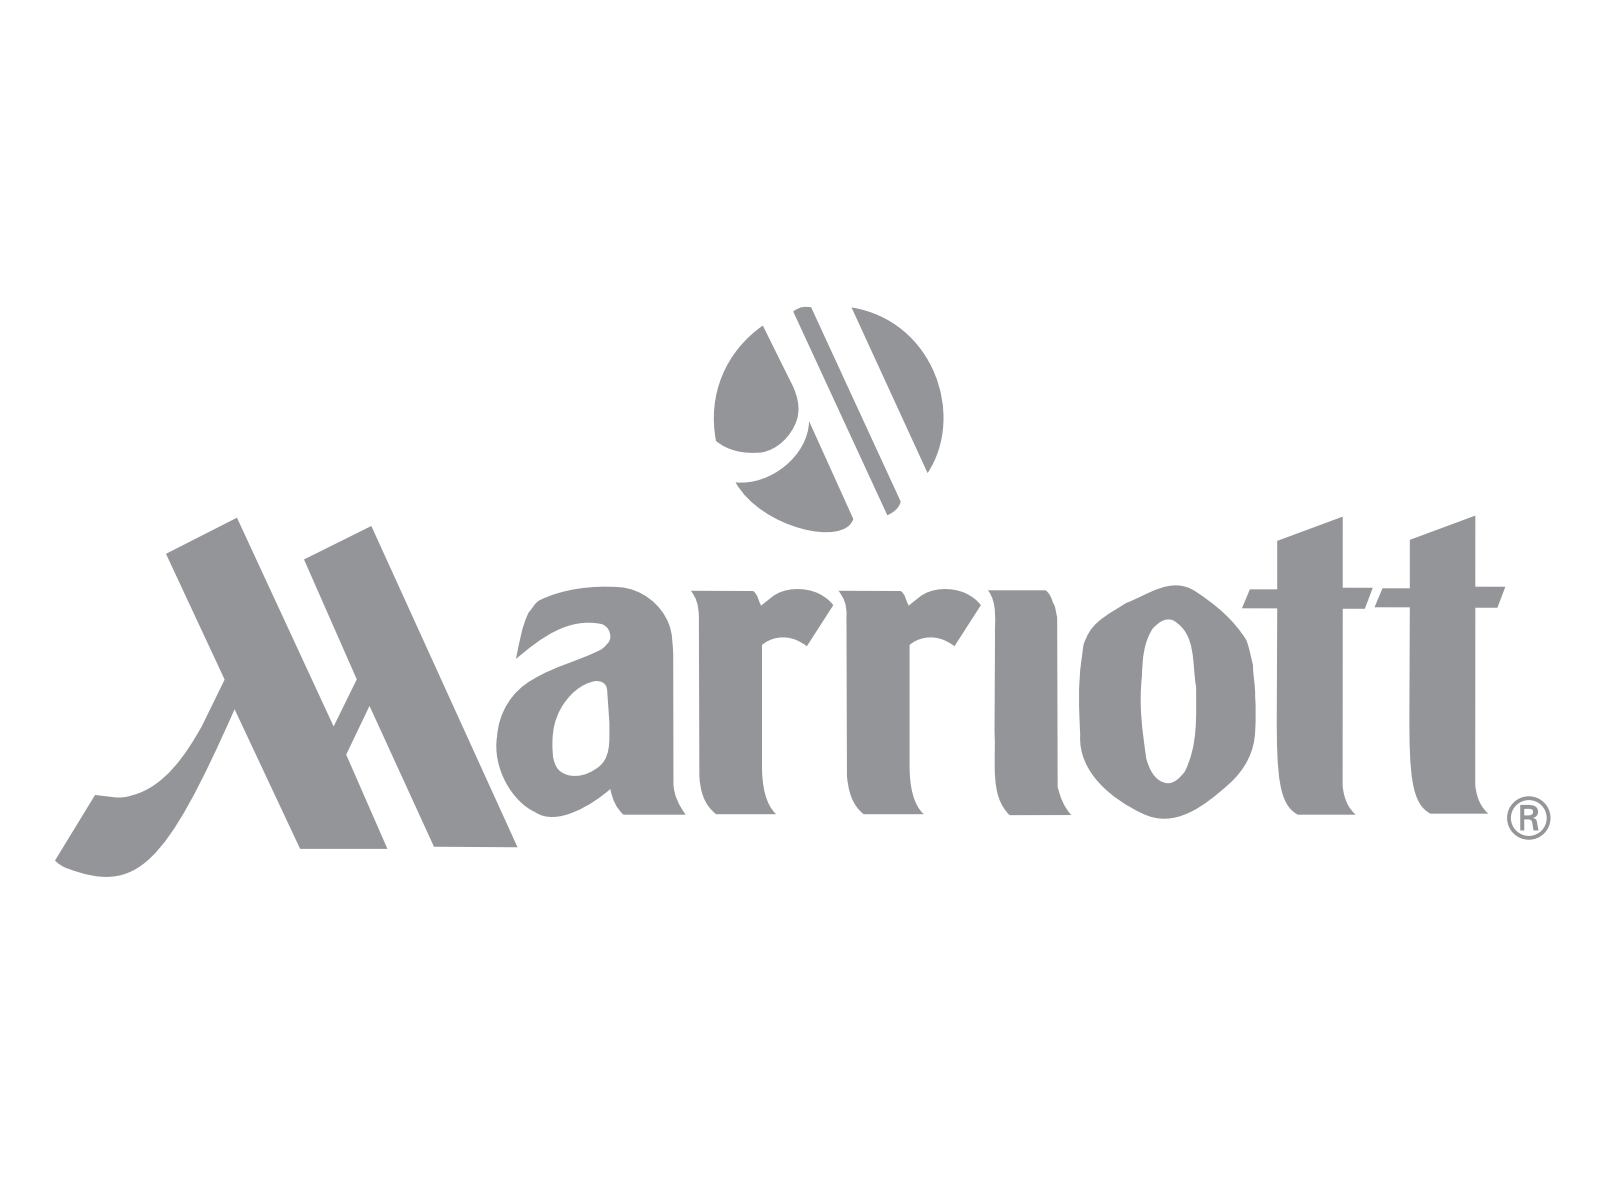 logo marriott.png